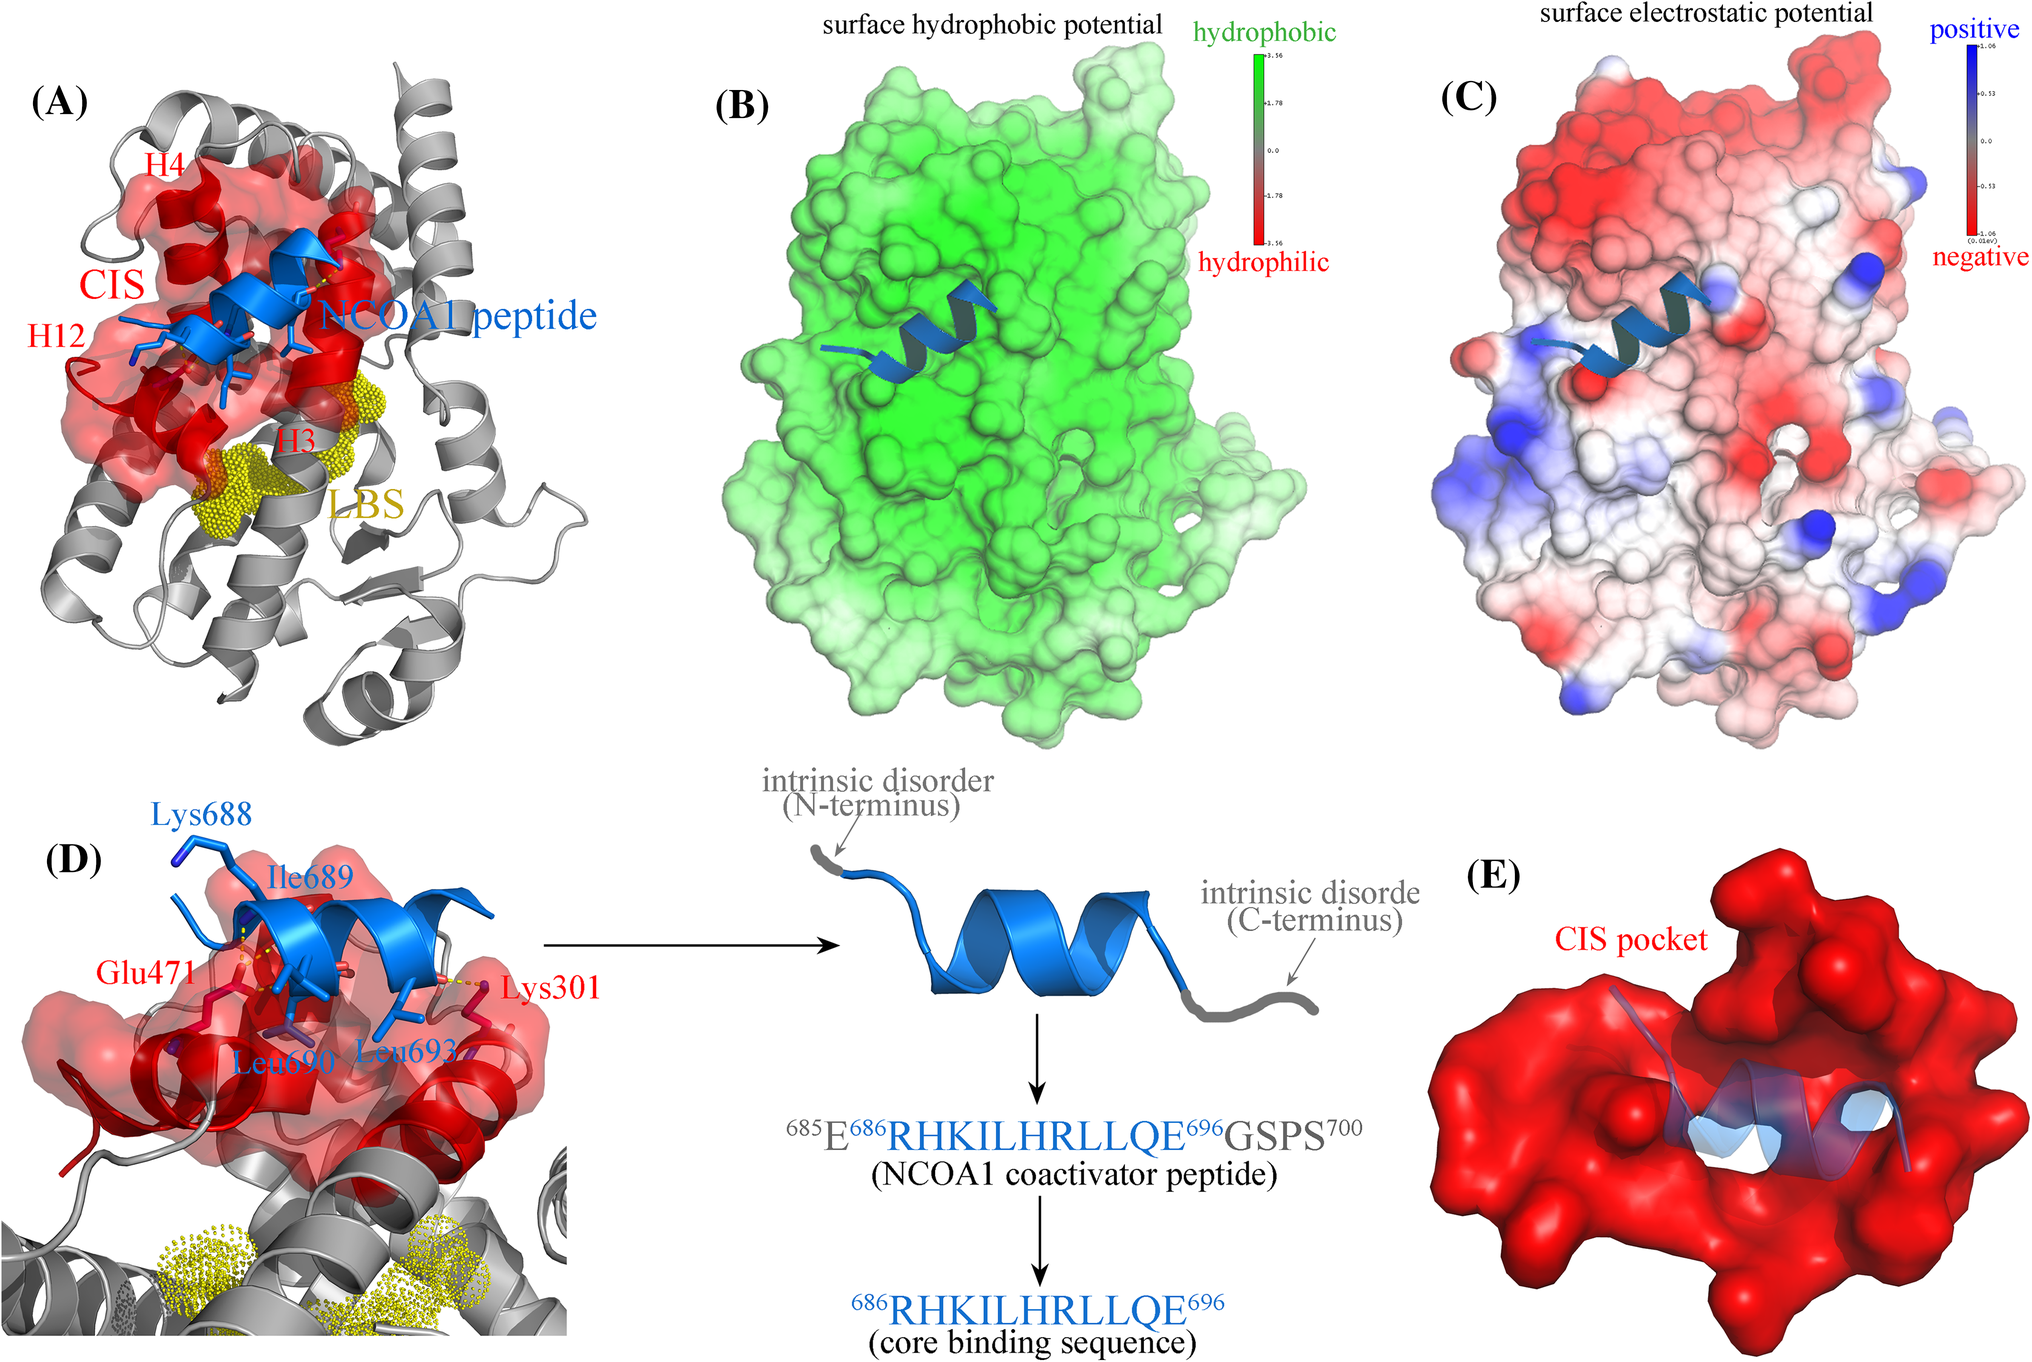 Structure-Based Stepwise Screening of PPARγ Antagonists as